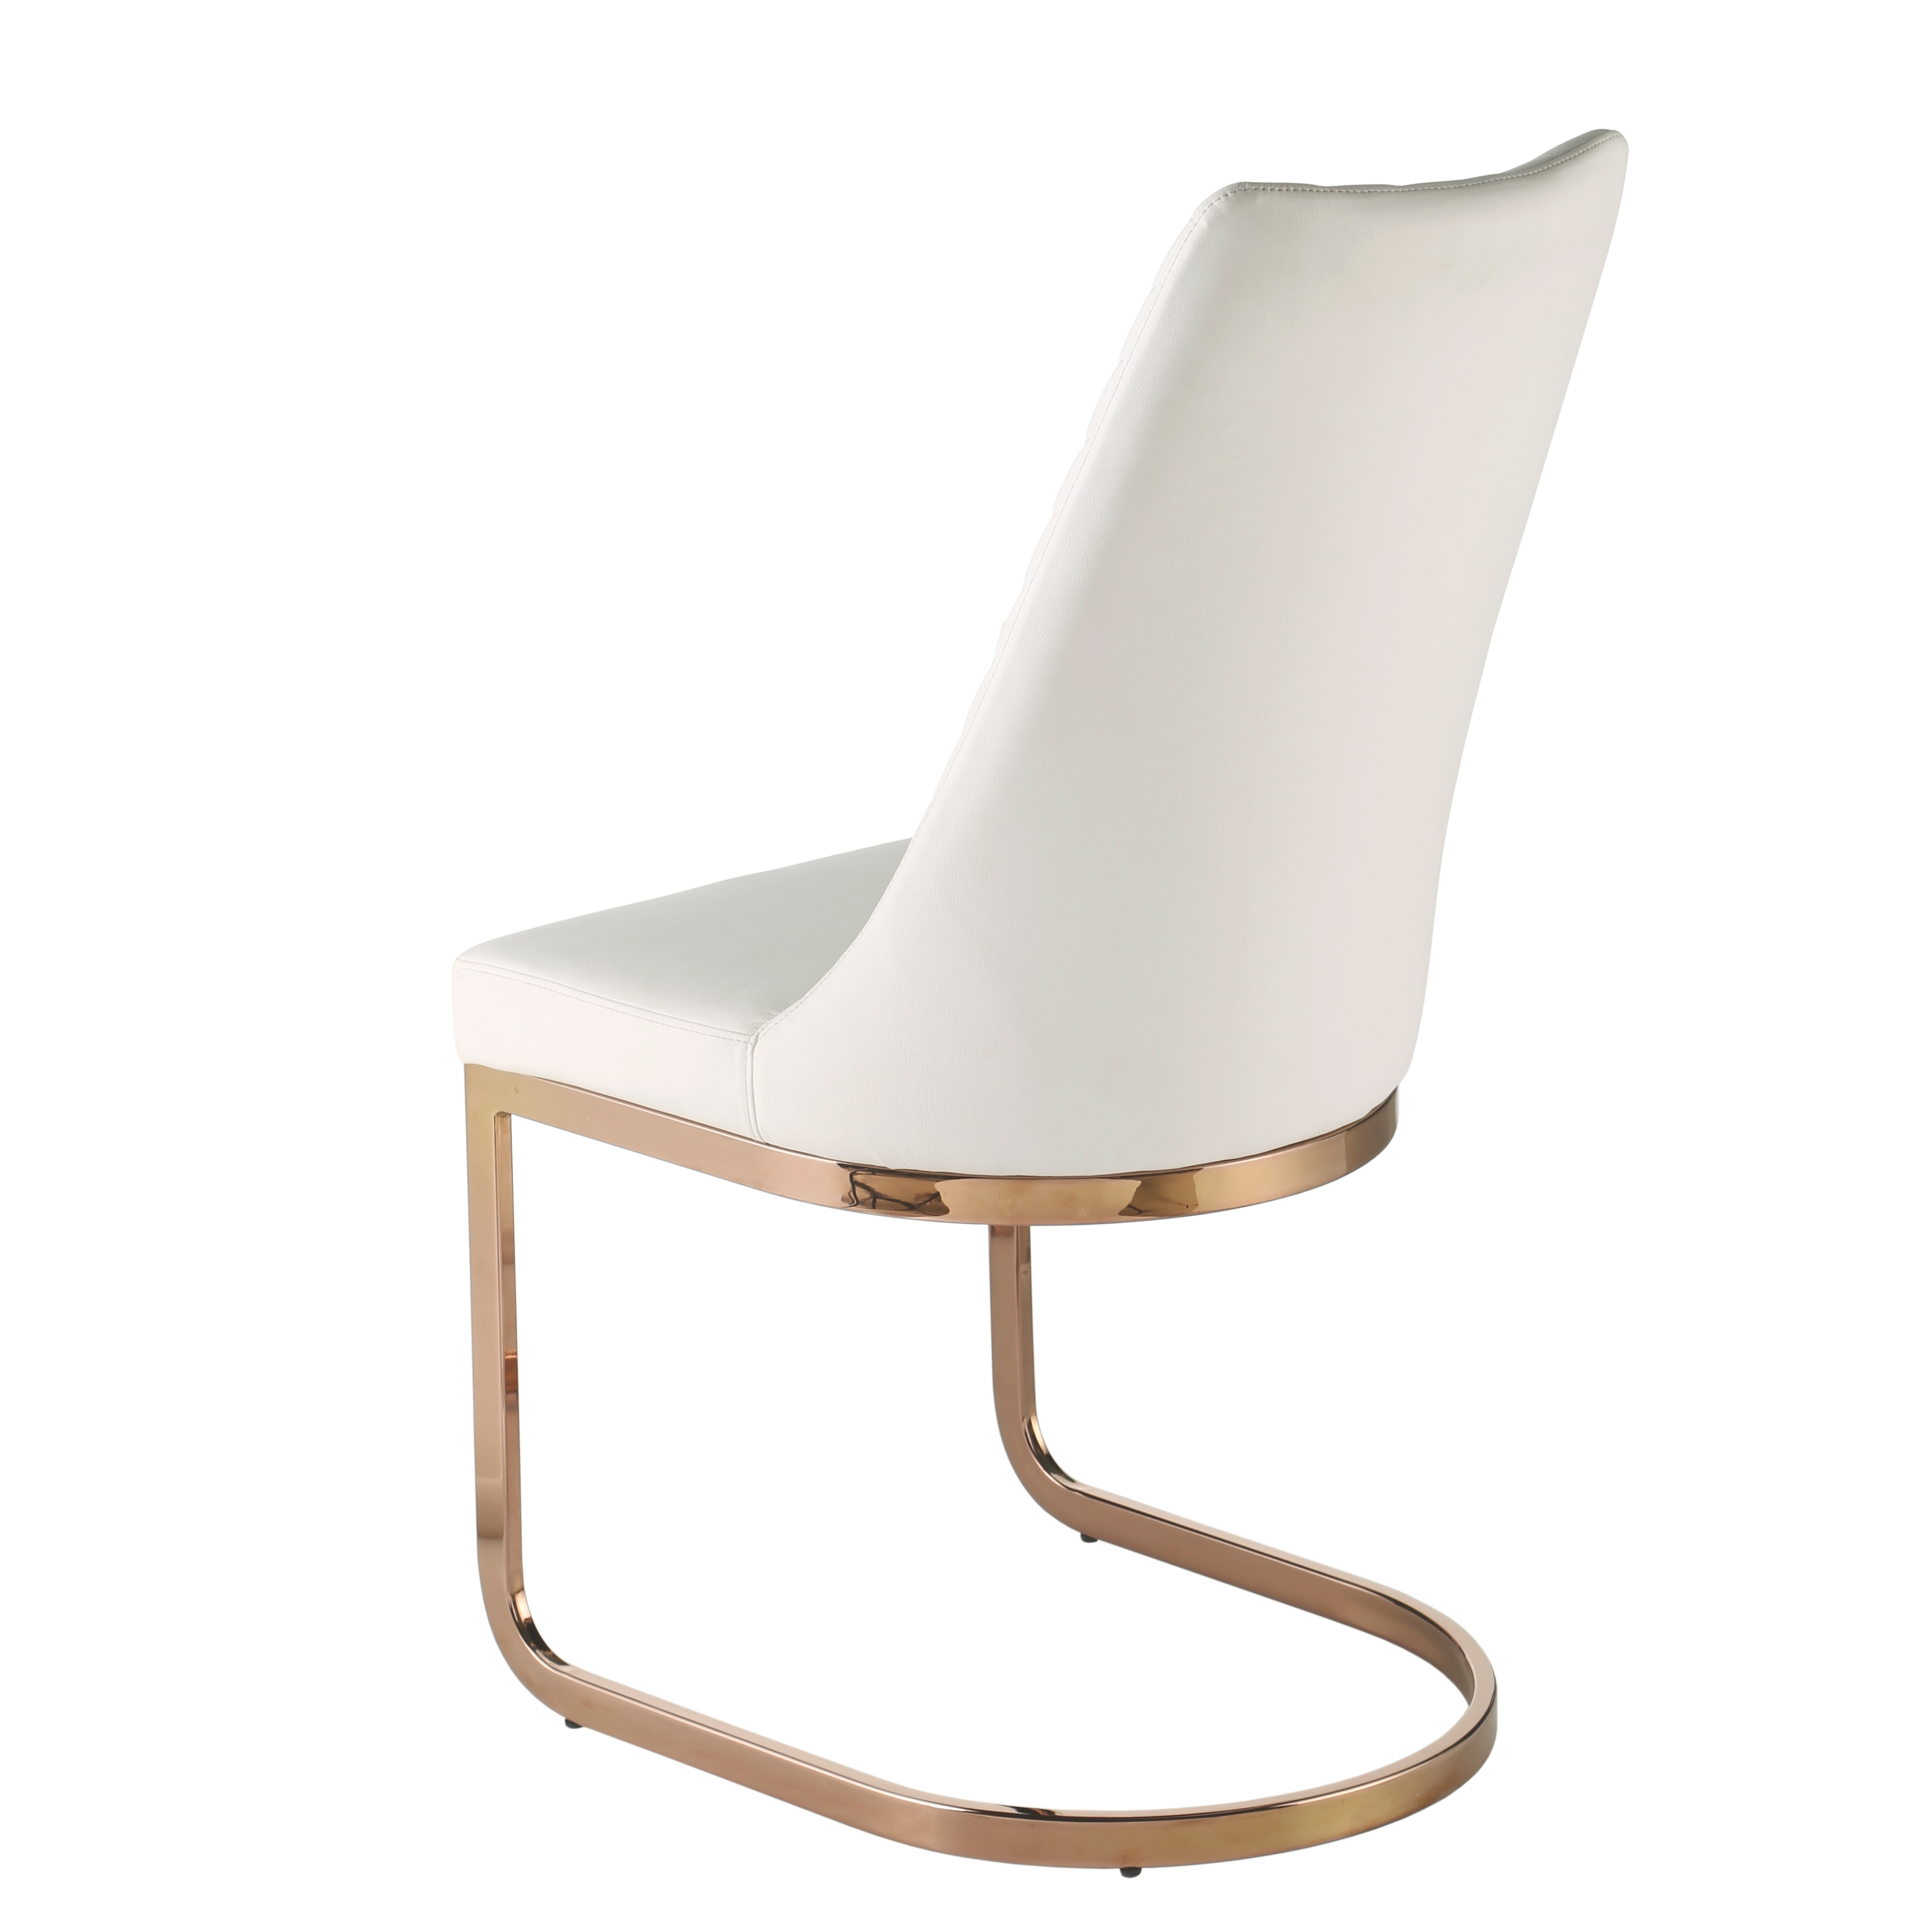 Kyla KD PU Chair Rose Gold Legs, White/3000001 W